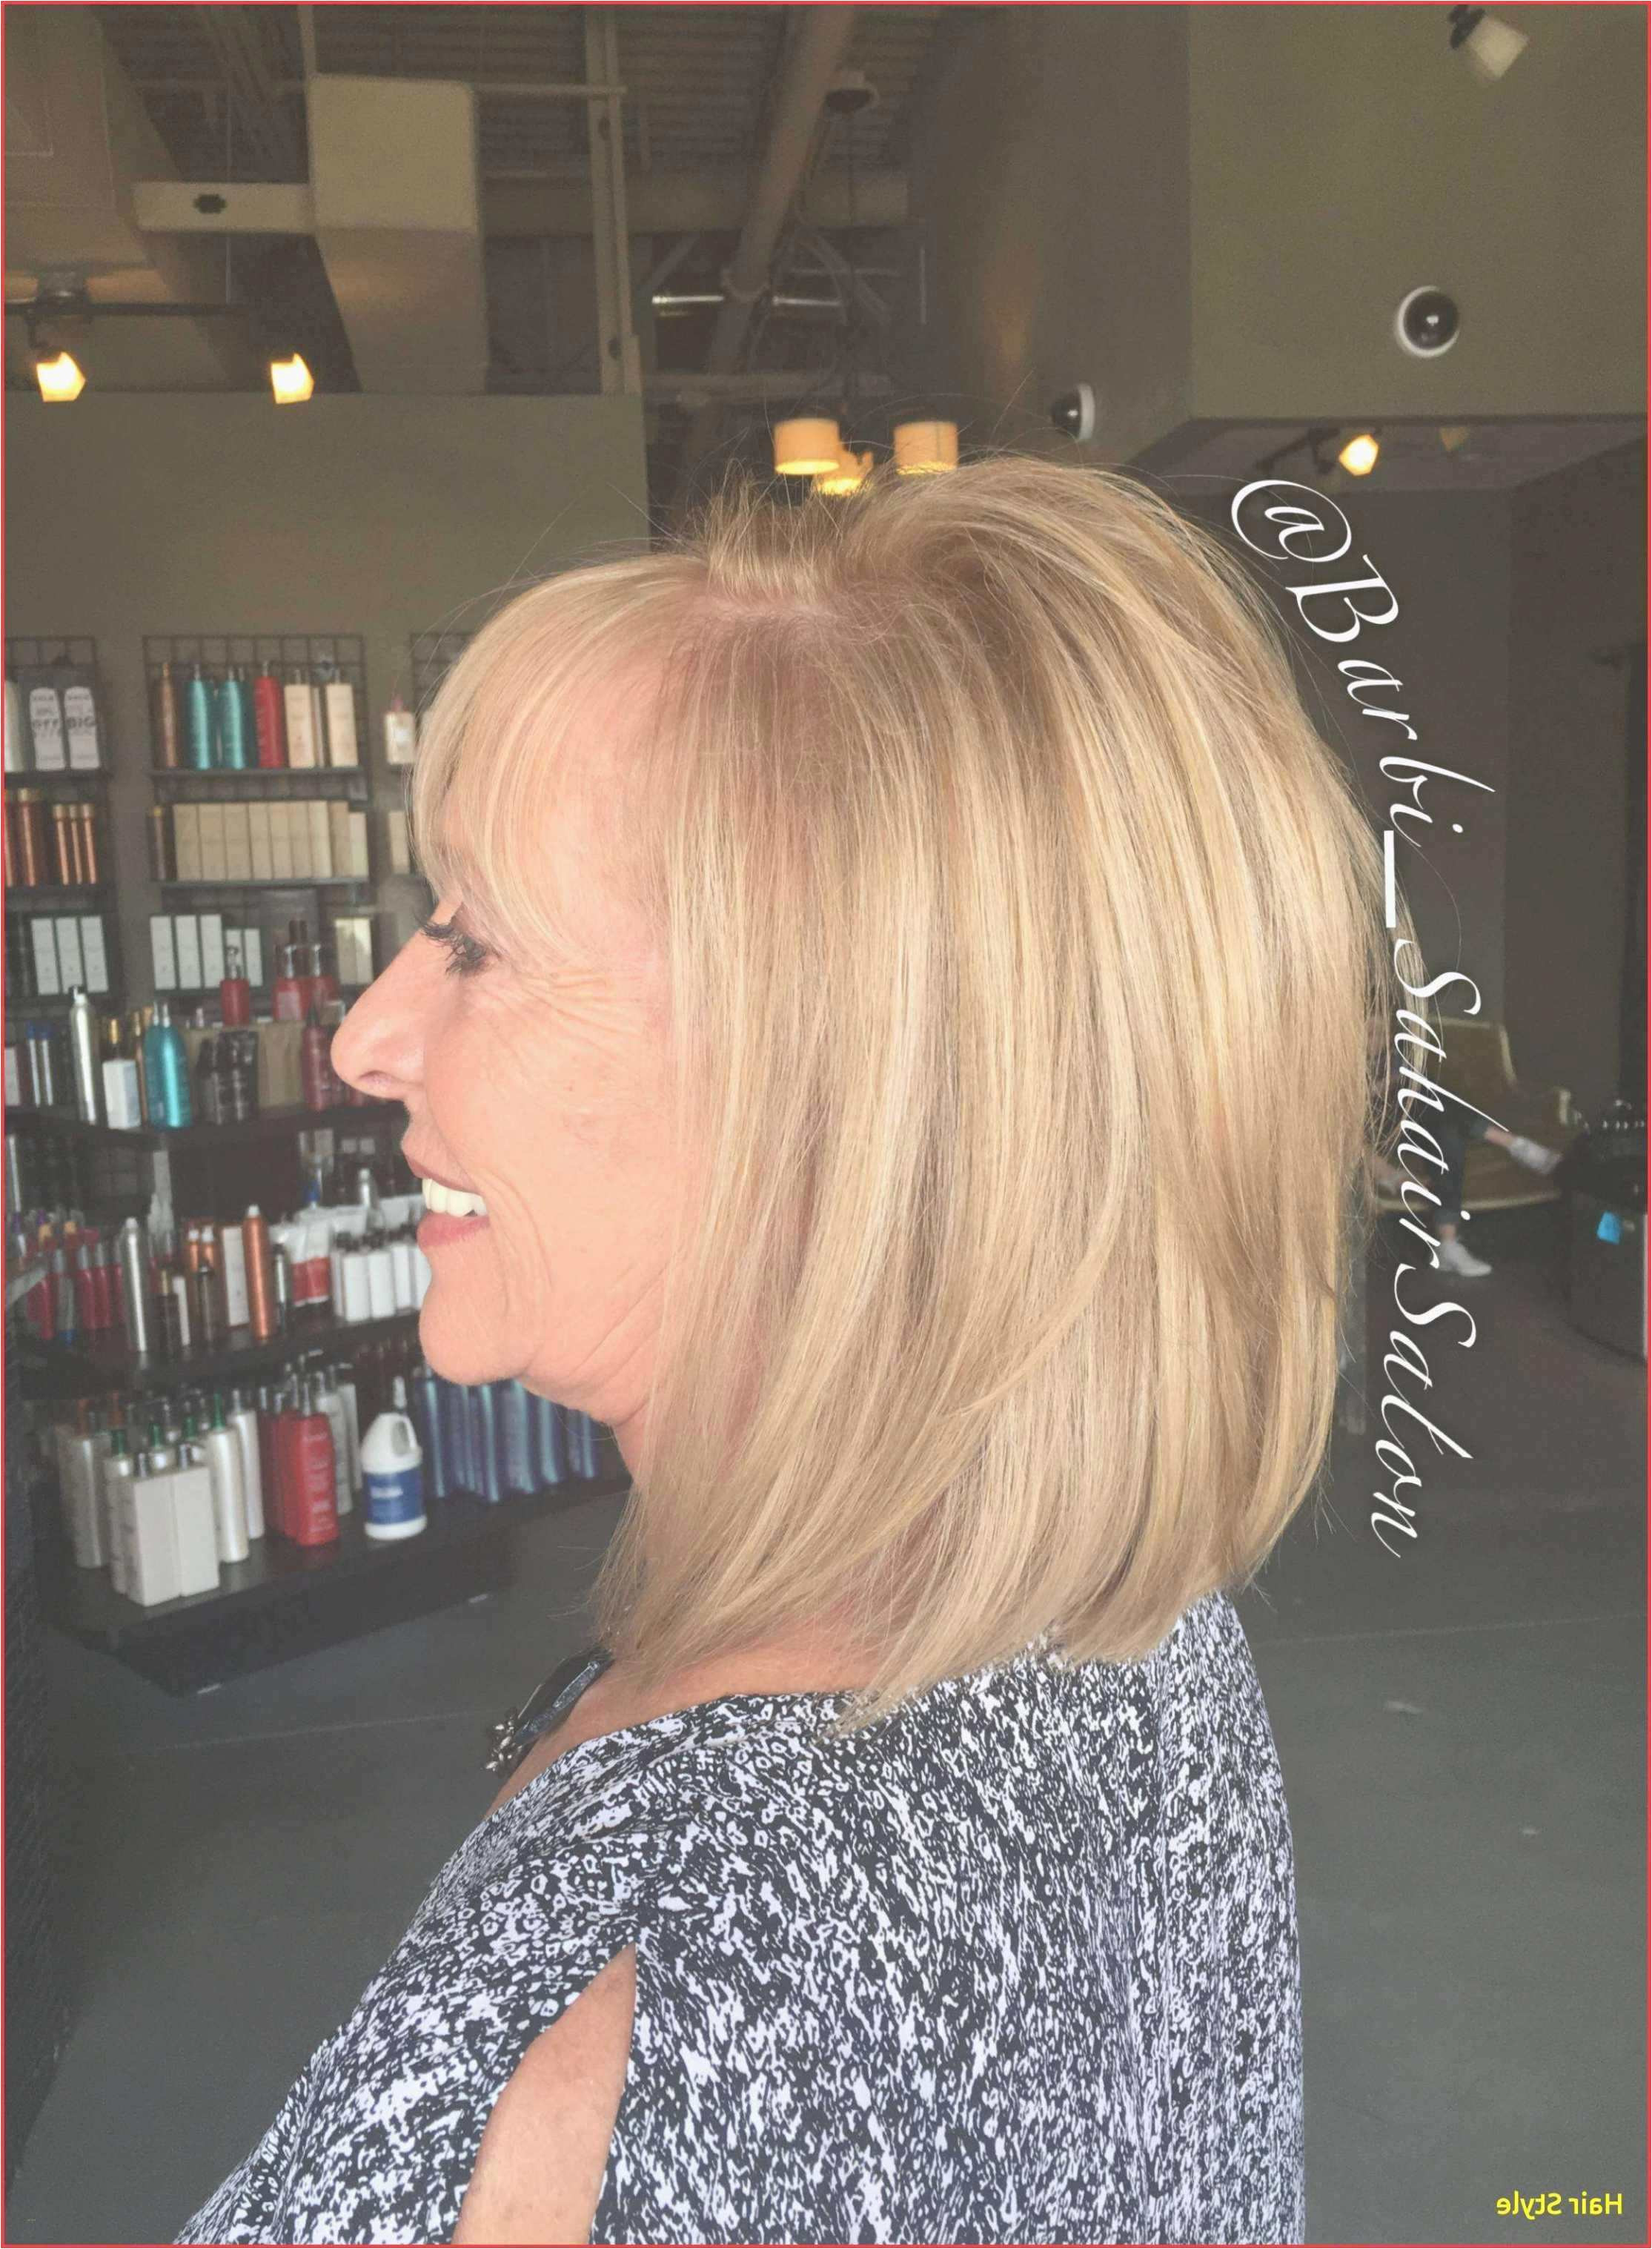 Hairstyles for Round Faces and Thick Hair Model Beautiful Short Bob Hairstyles 2014 for Thick Hair